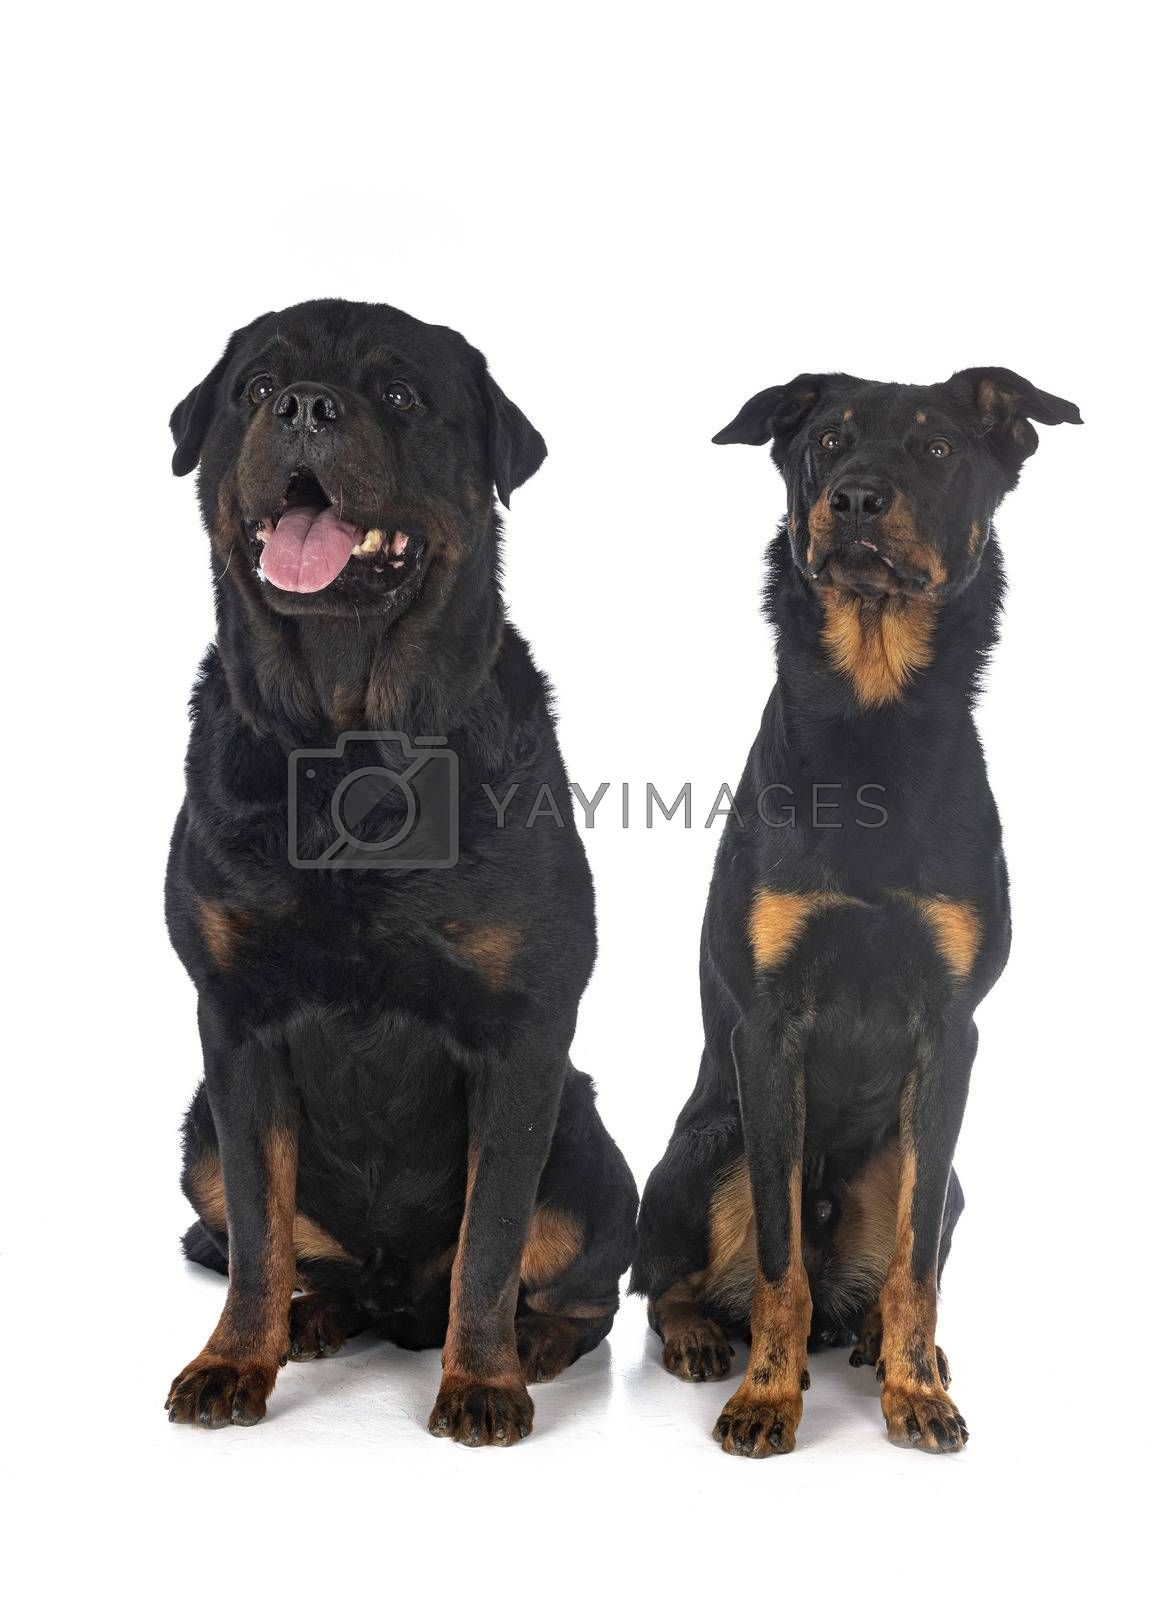 berger de Beauce and rottweiler in front of white background